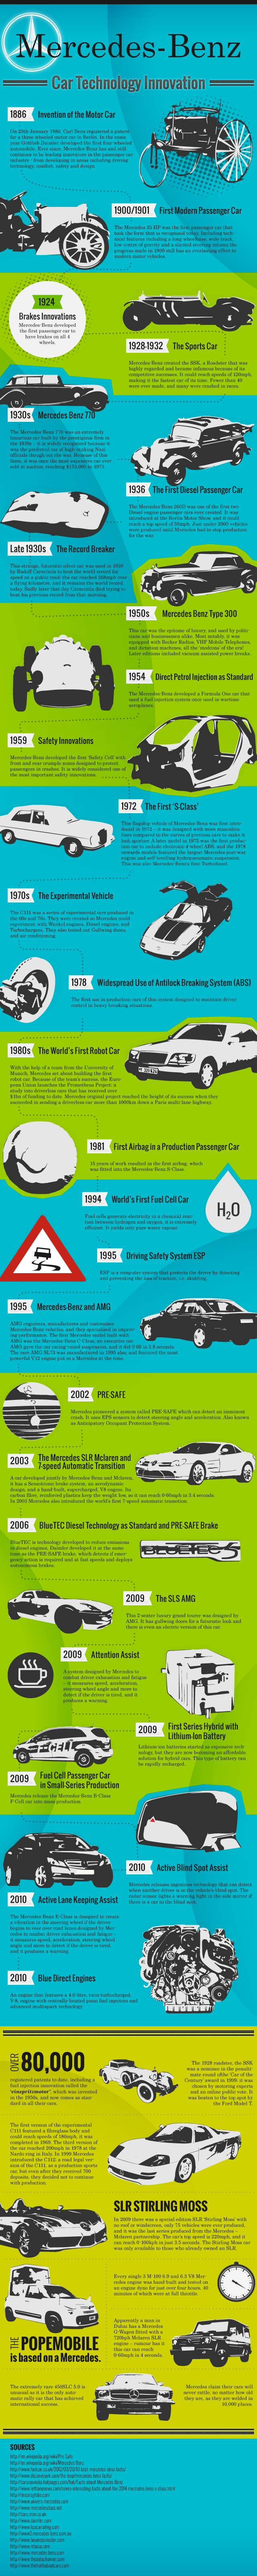 Mercedes Infographic